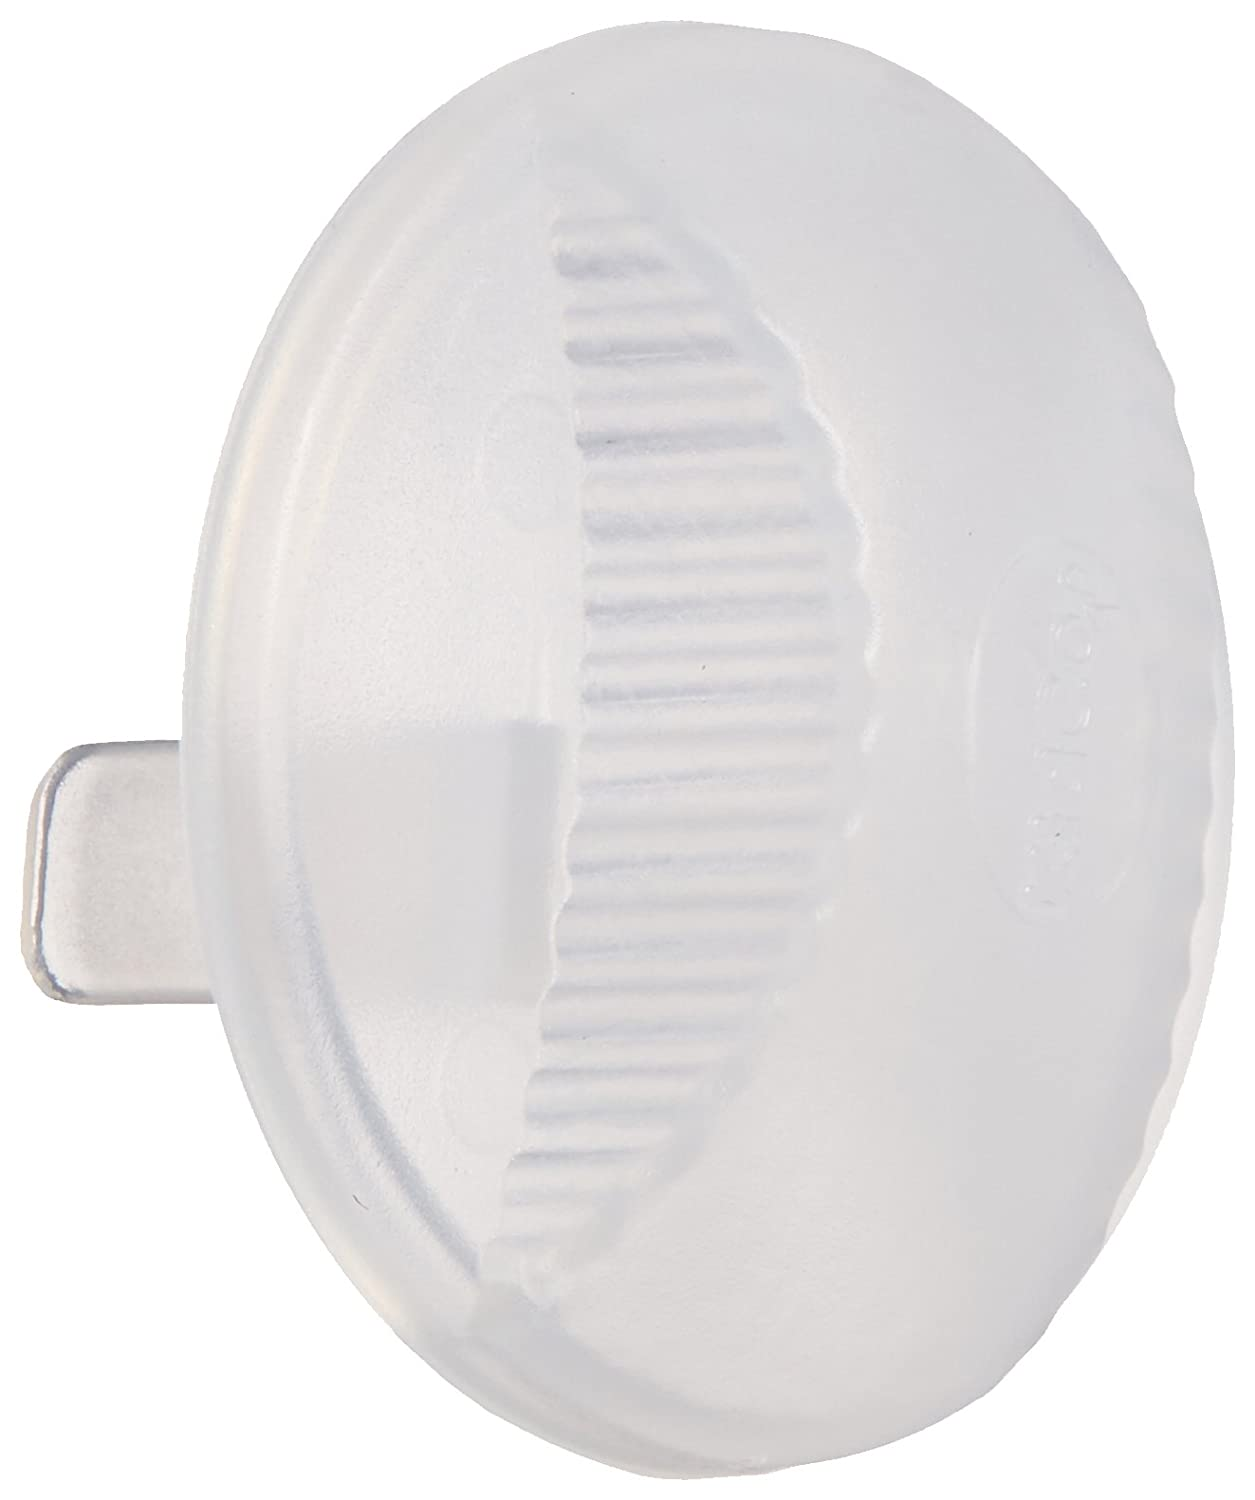 KidCo Electrical Outlet Caps 24 pack, White S360-24